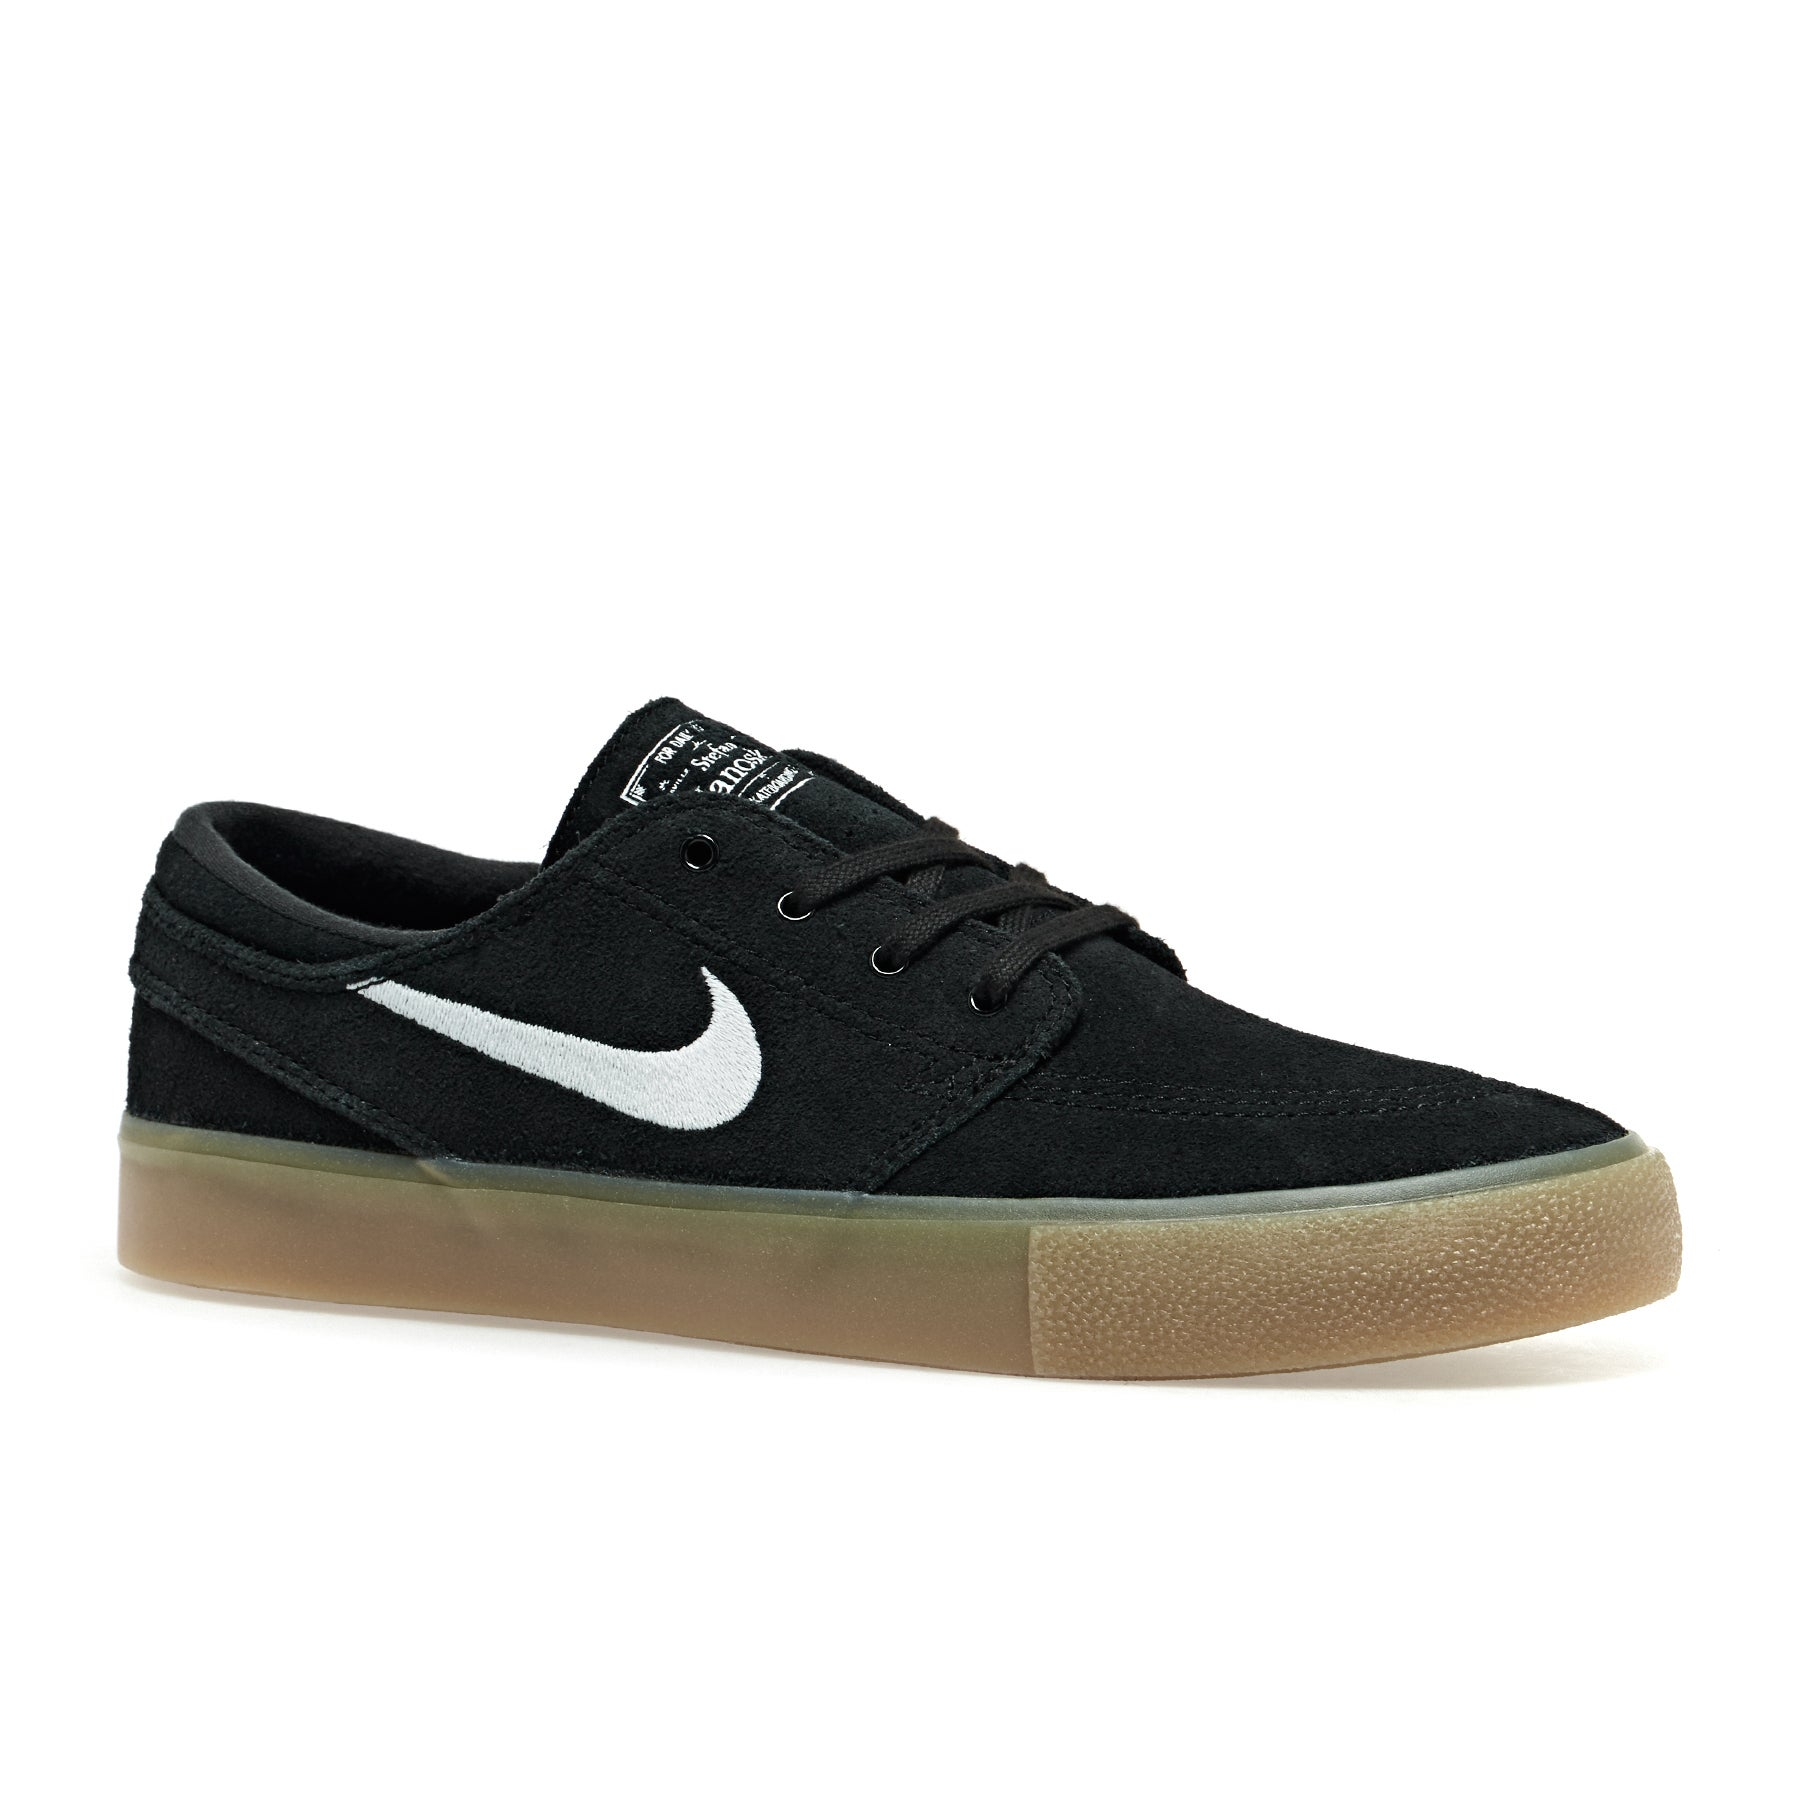 Nike SB Zoom Janoski Rm Shoes - Black White Gum Brown